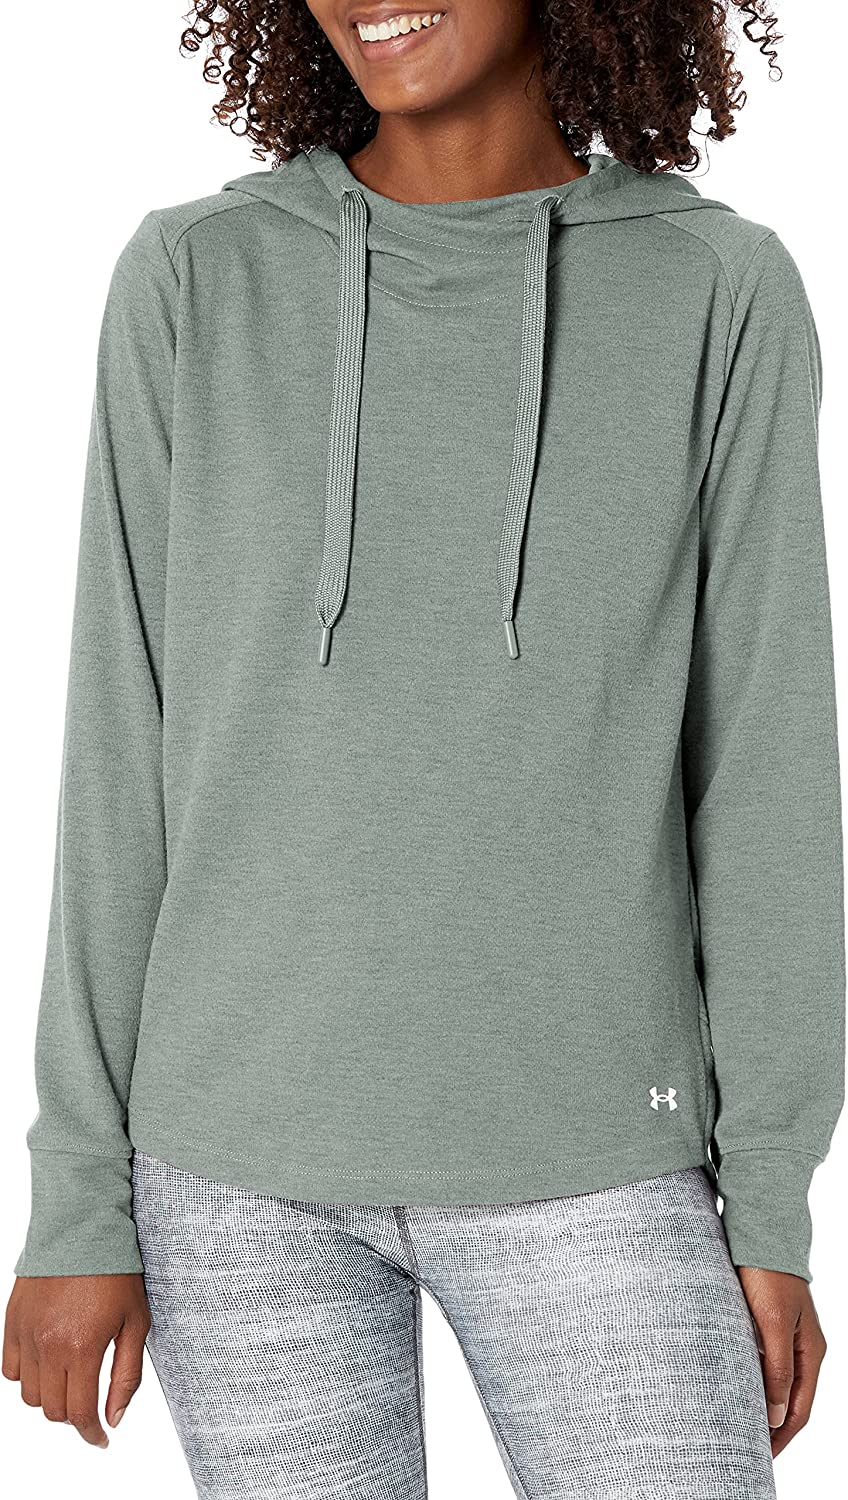 Under Armour Women's ColdGear Hoodie All stores are sold Infrared latest